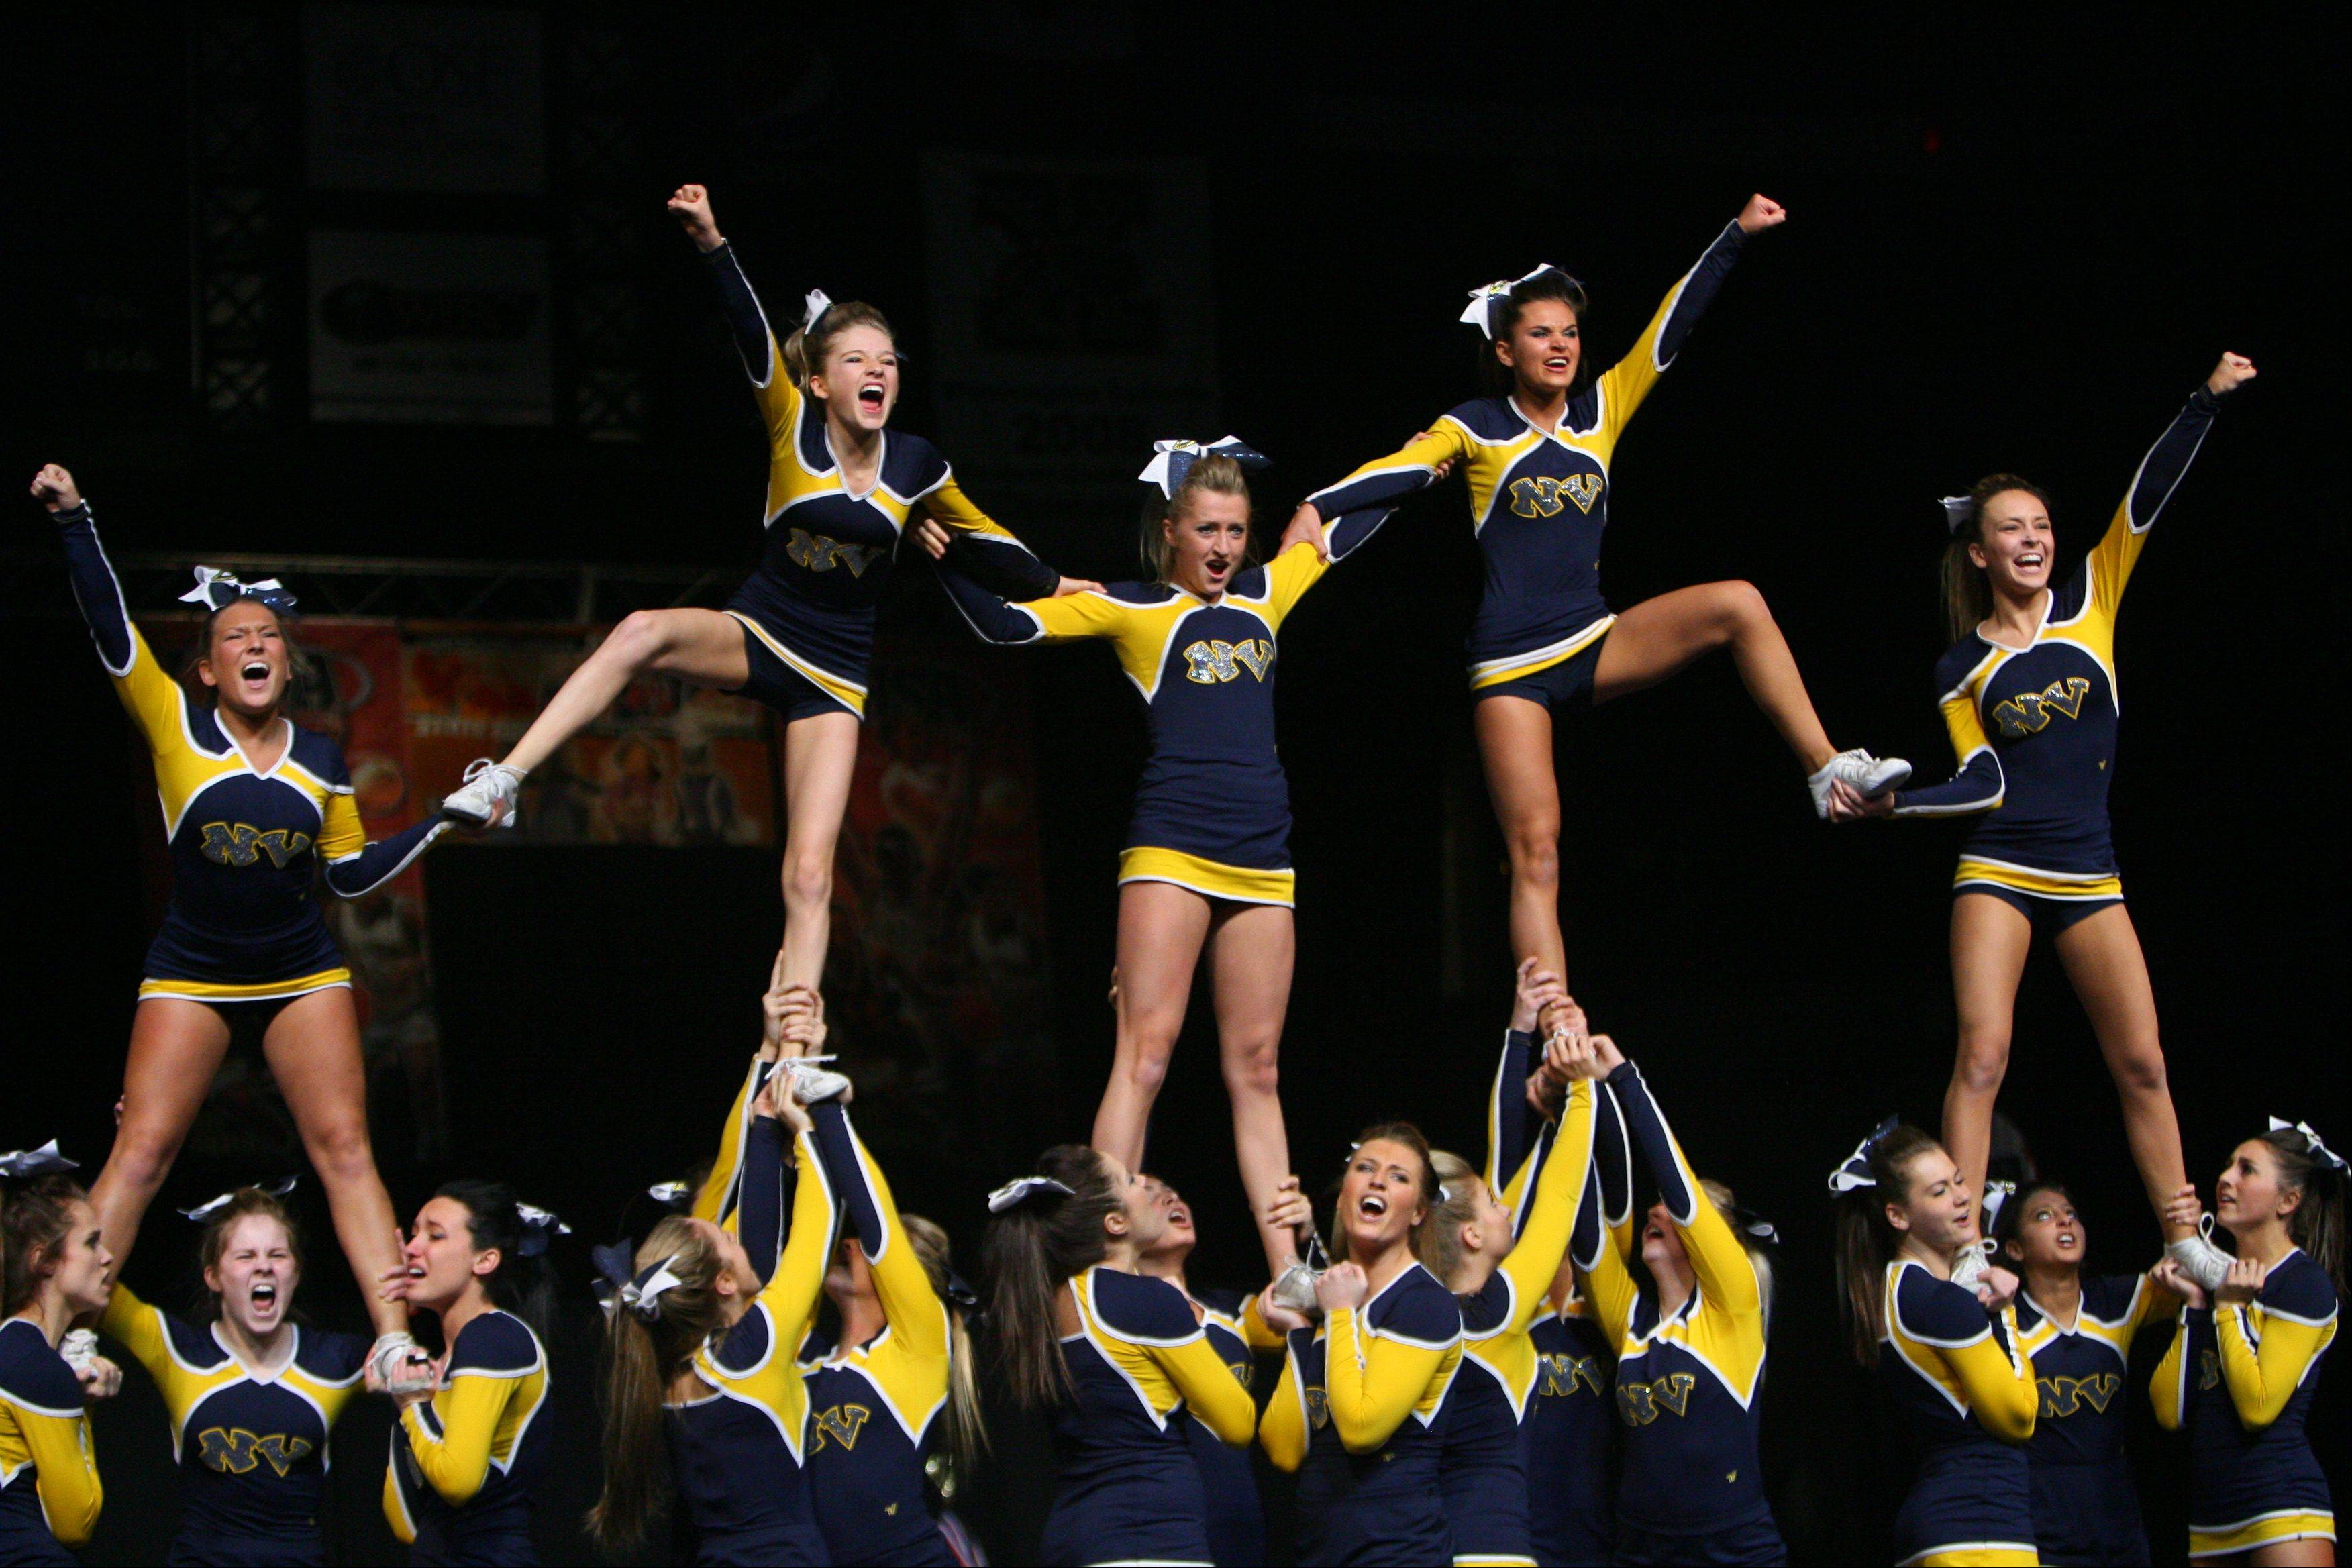 Neuqua Valley High School participates in the IHSA Competitive Cheerleading finals on Saturday, Feb. 2 at the U.S. Cellular Coliseum in Bloomington.